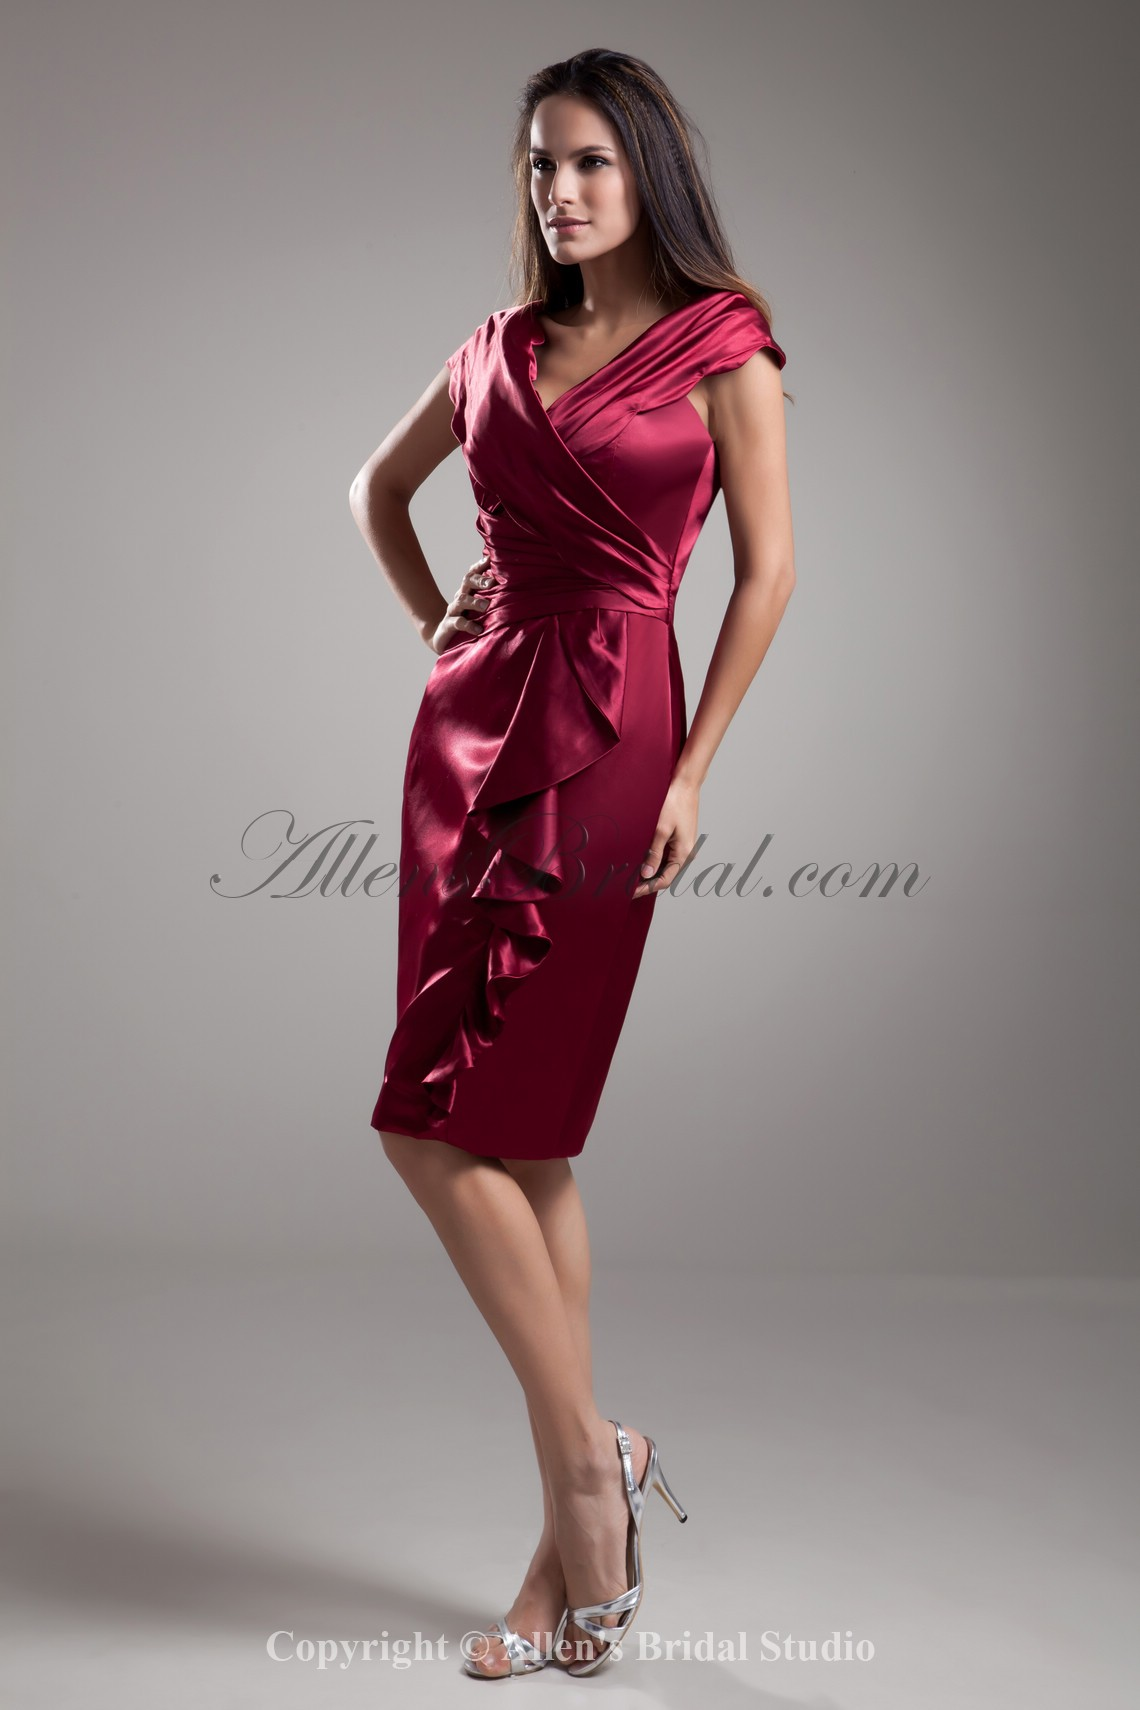 /711-5693/satin-v-neck-neckline-knee-length-sheath-cap-sleeves-cocktail-dress.jpg